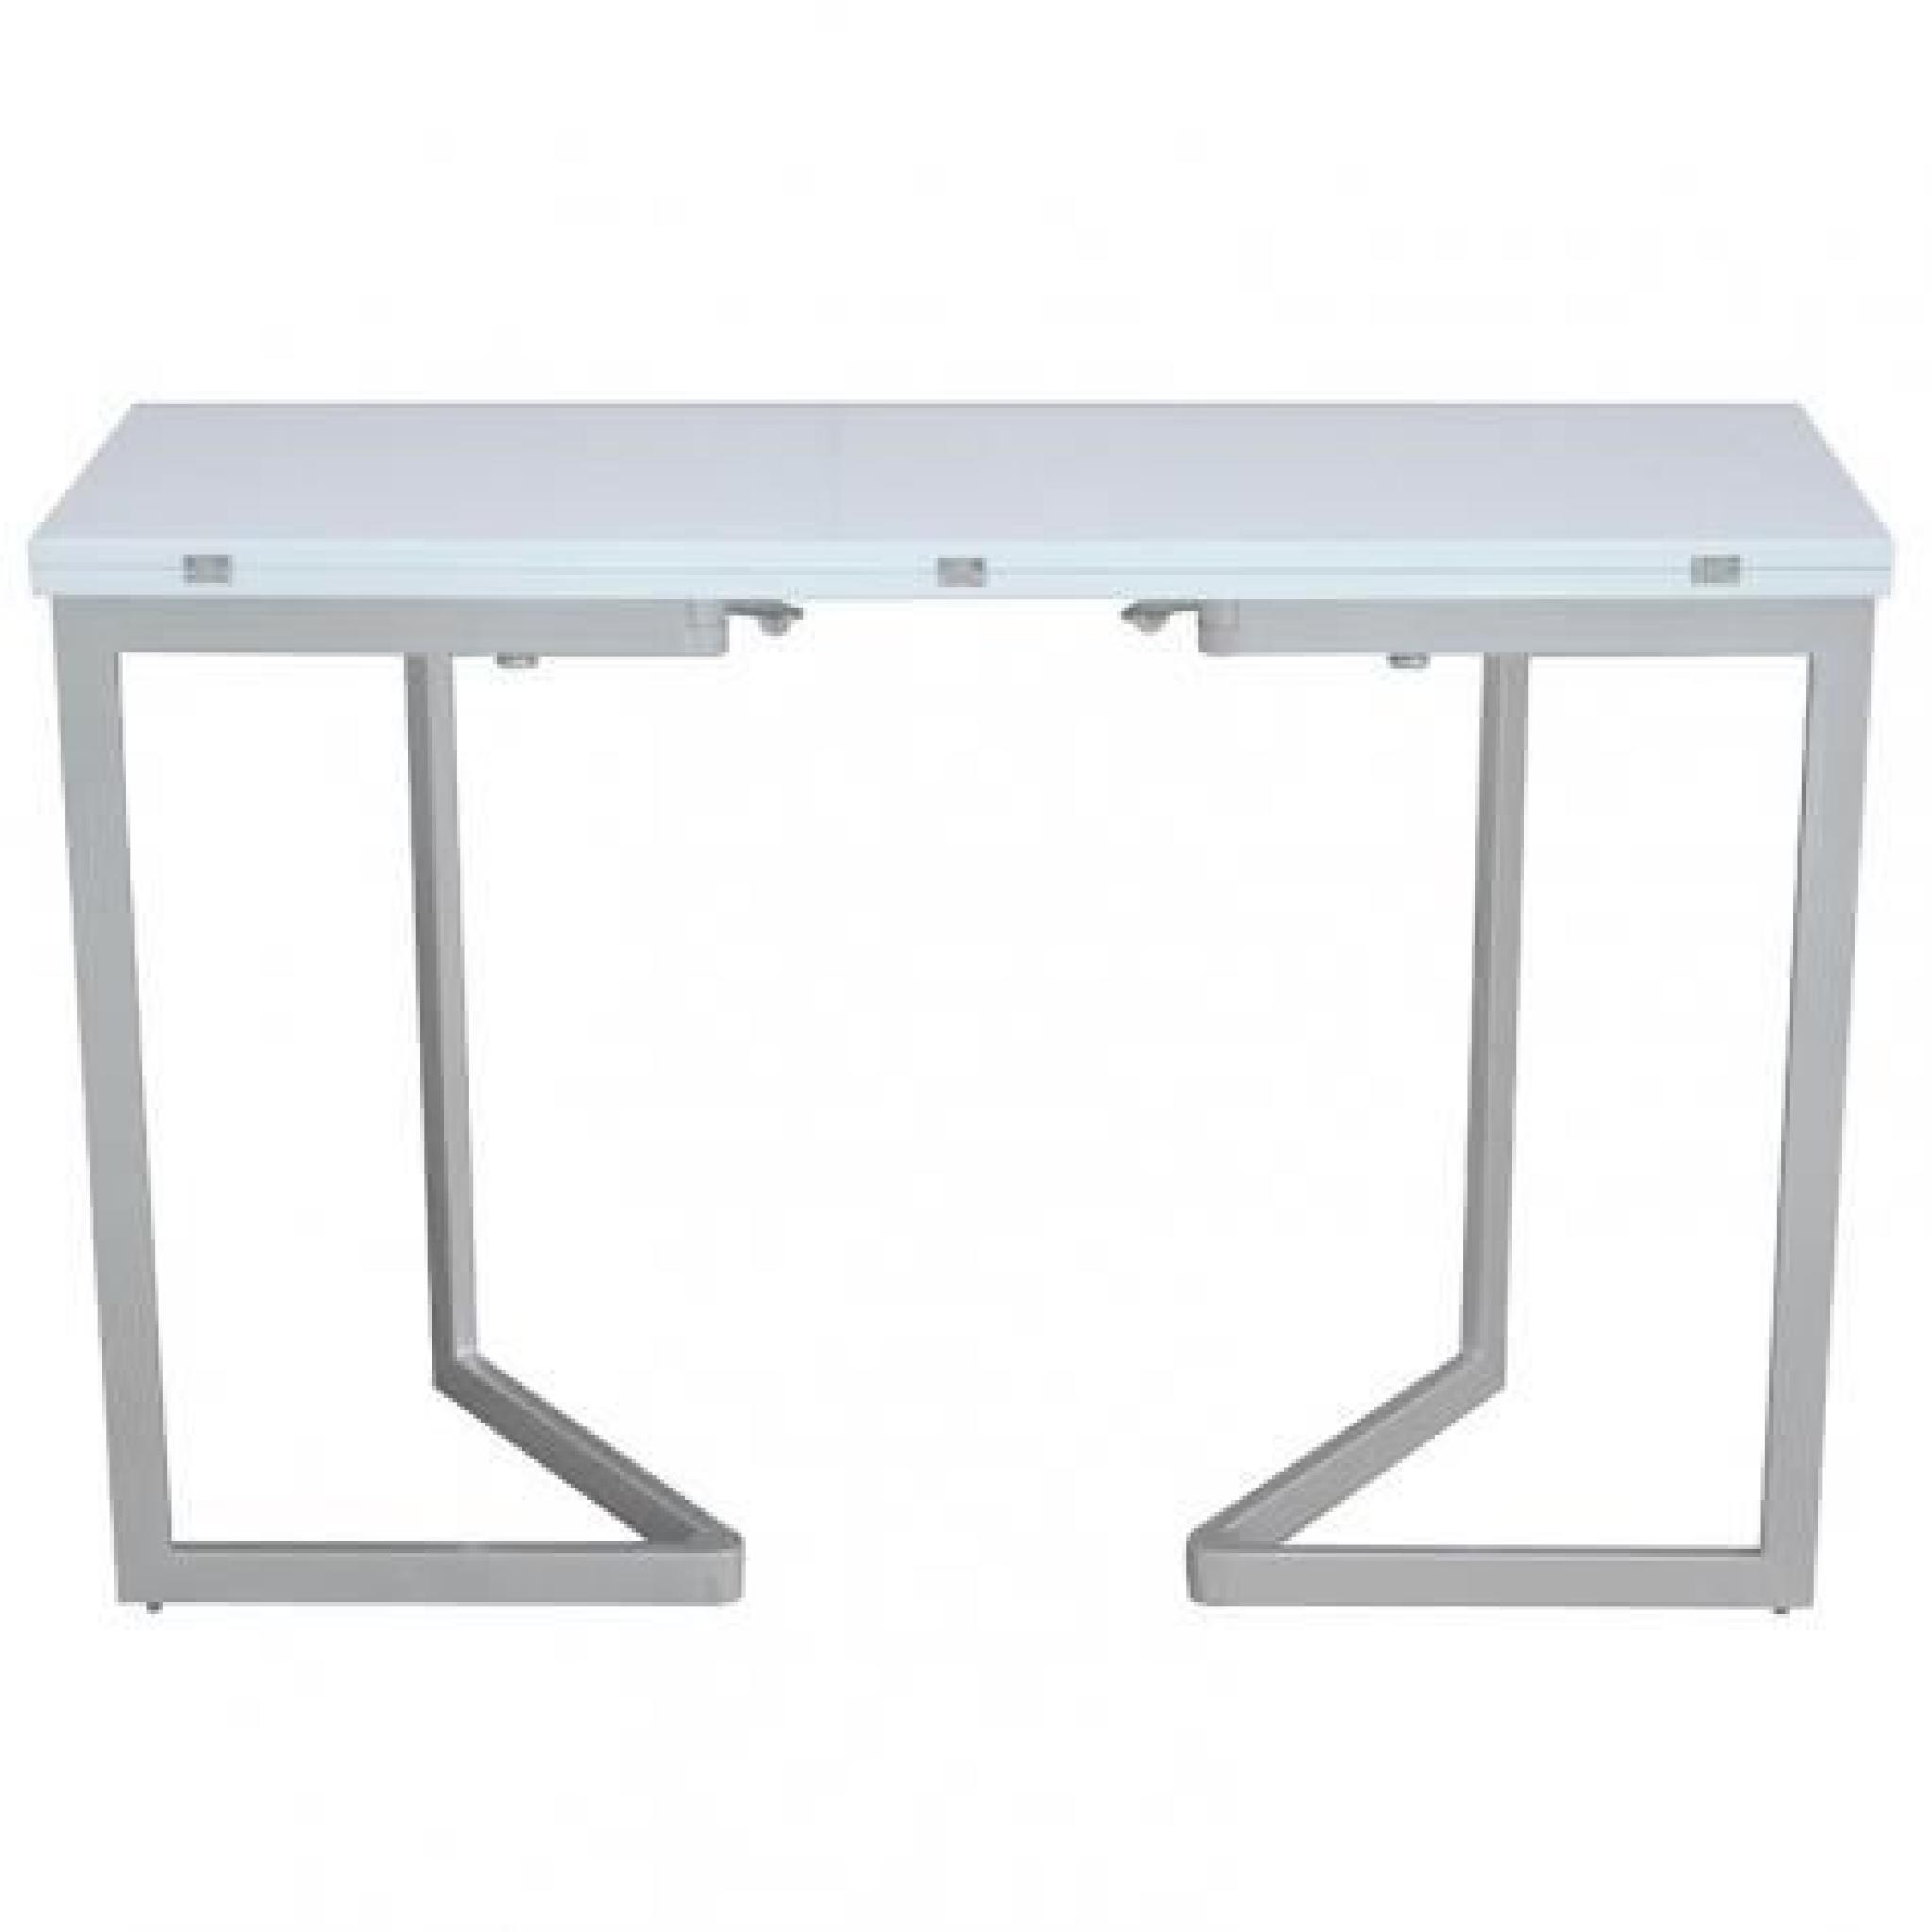 Table extensible blanche laquee 28 images table for Table salle a manger extensible blanche